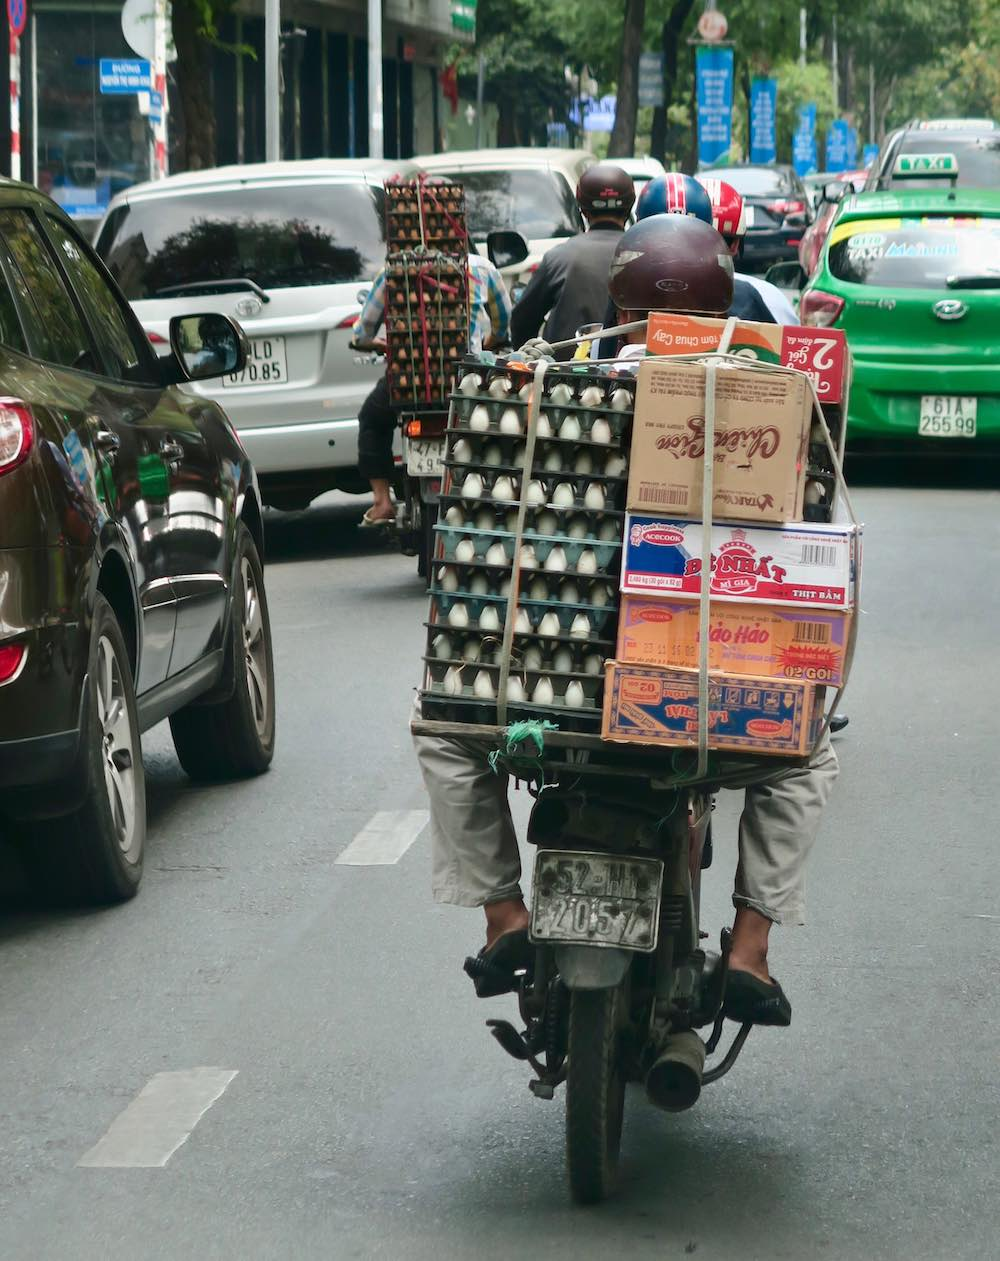 Lots of eggs being transported by motorbike in Vietnam |curlytraveller.com